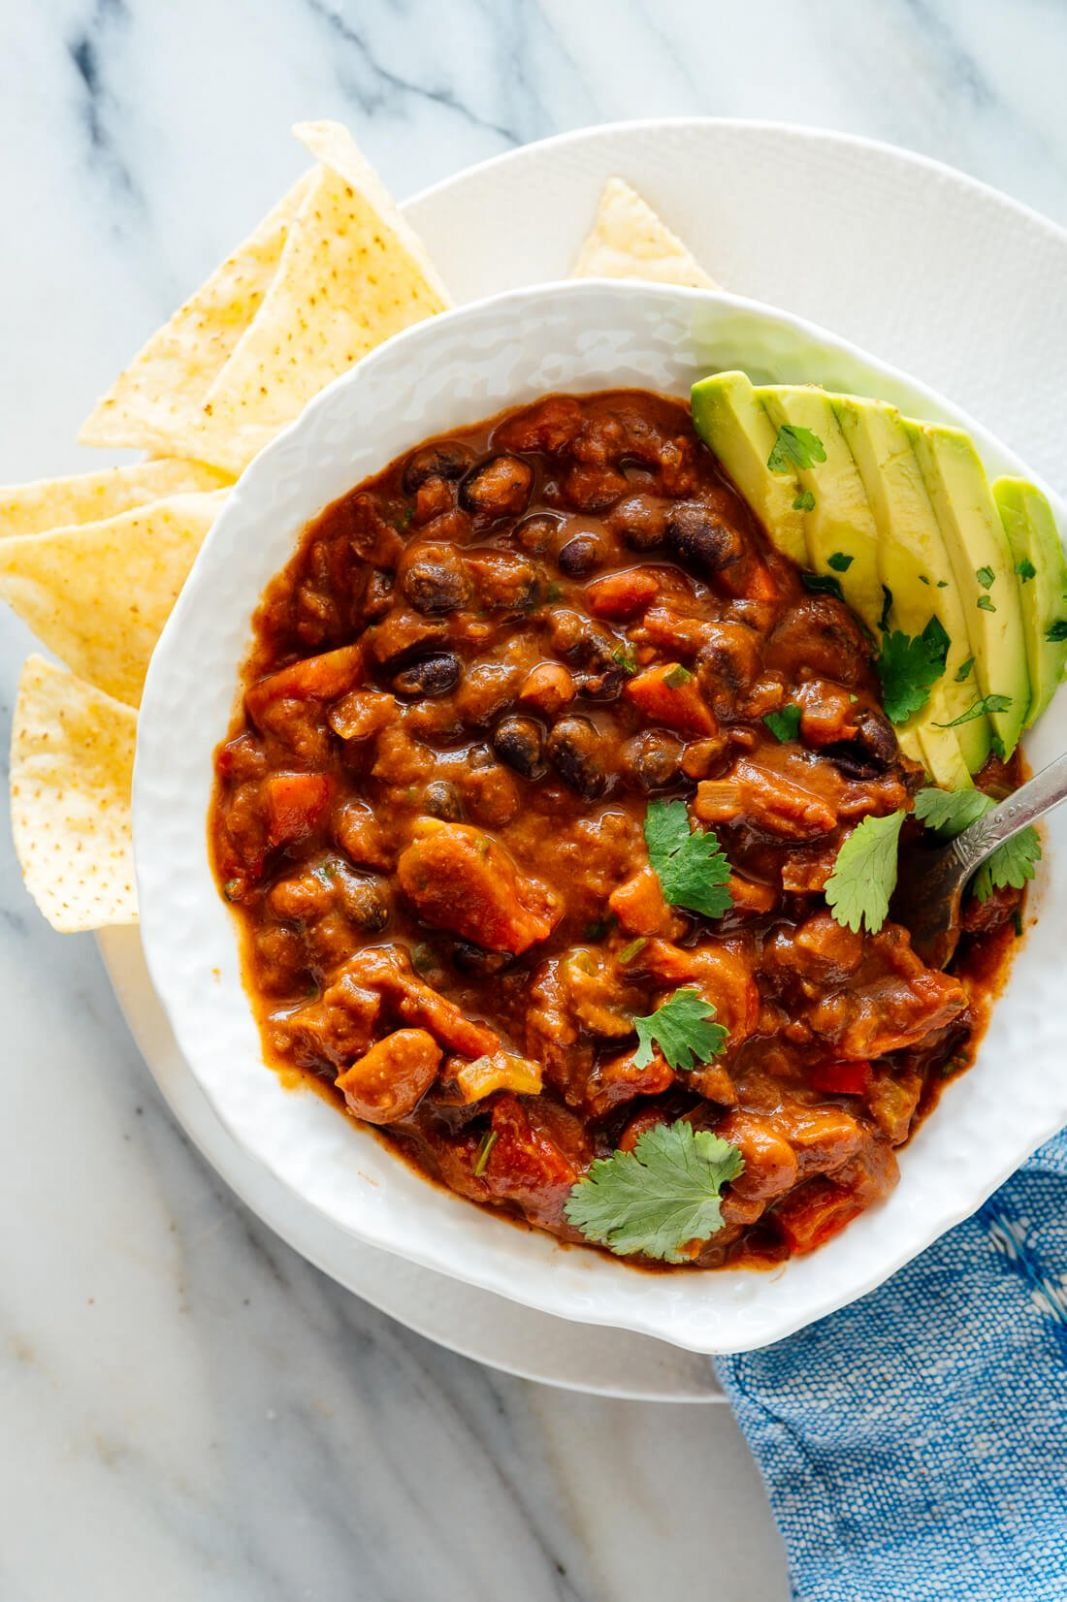 Homemade Vegetarian Chili - Simple Recipes Vegetarian Chili